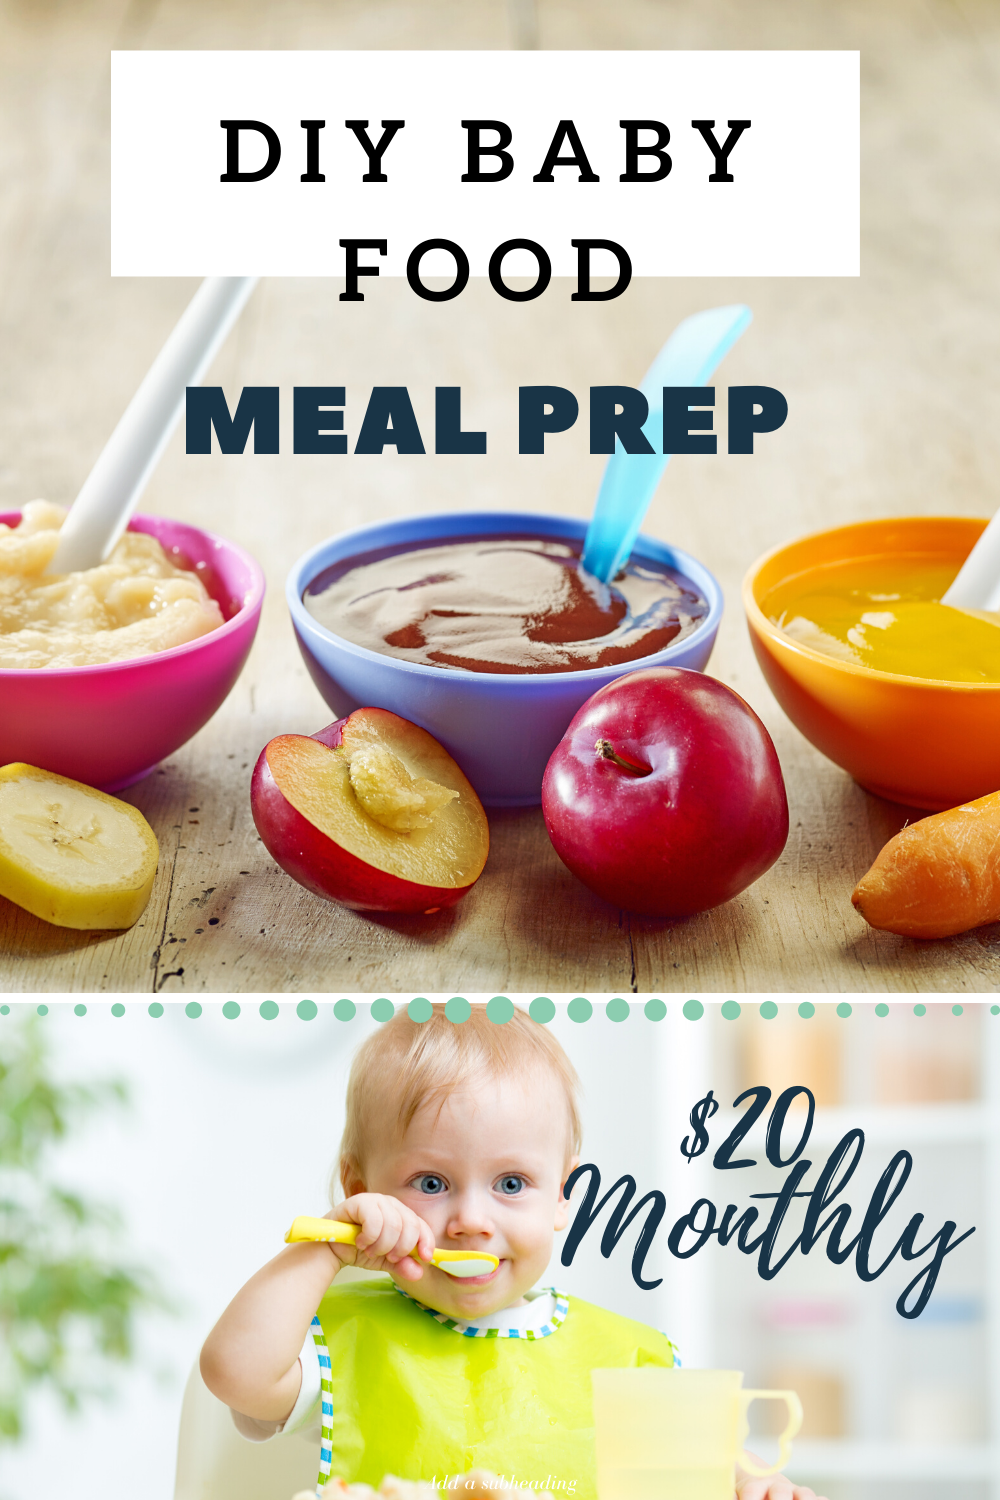 Several recipes to make a month's worth of baby food all under 20$ #babyfood #organicbabyfood #healthybabyfood #happybaby